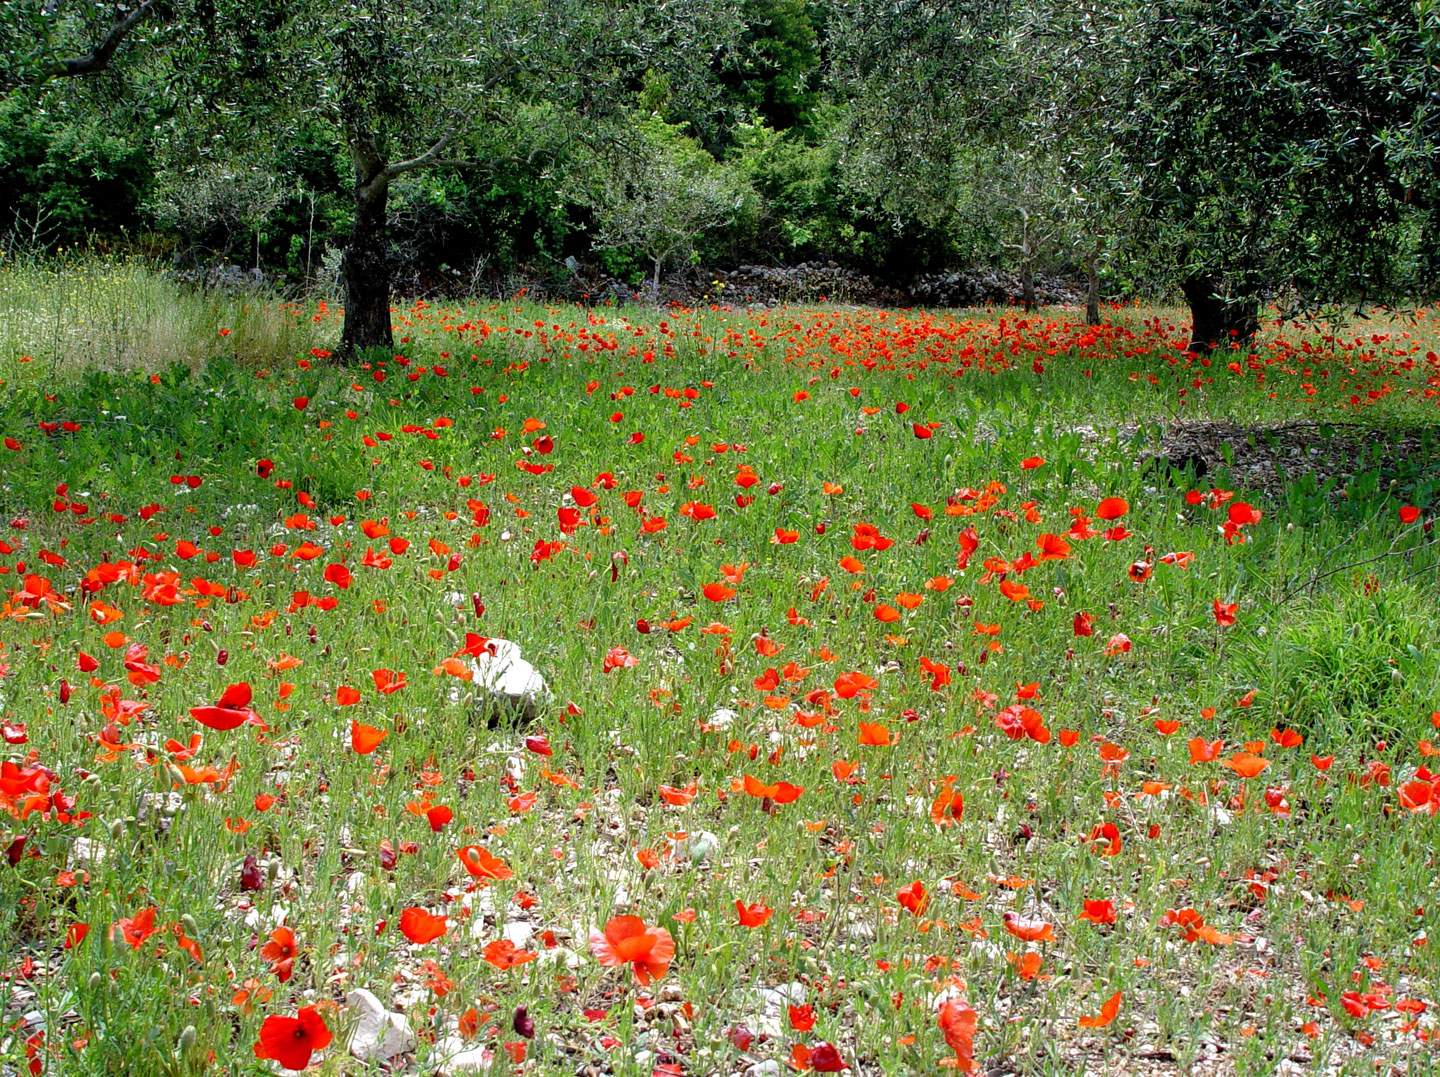 Field of poppies, spring in Lefkada